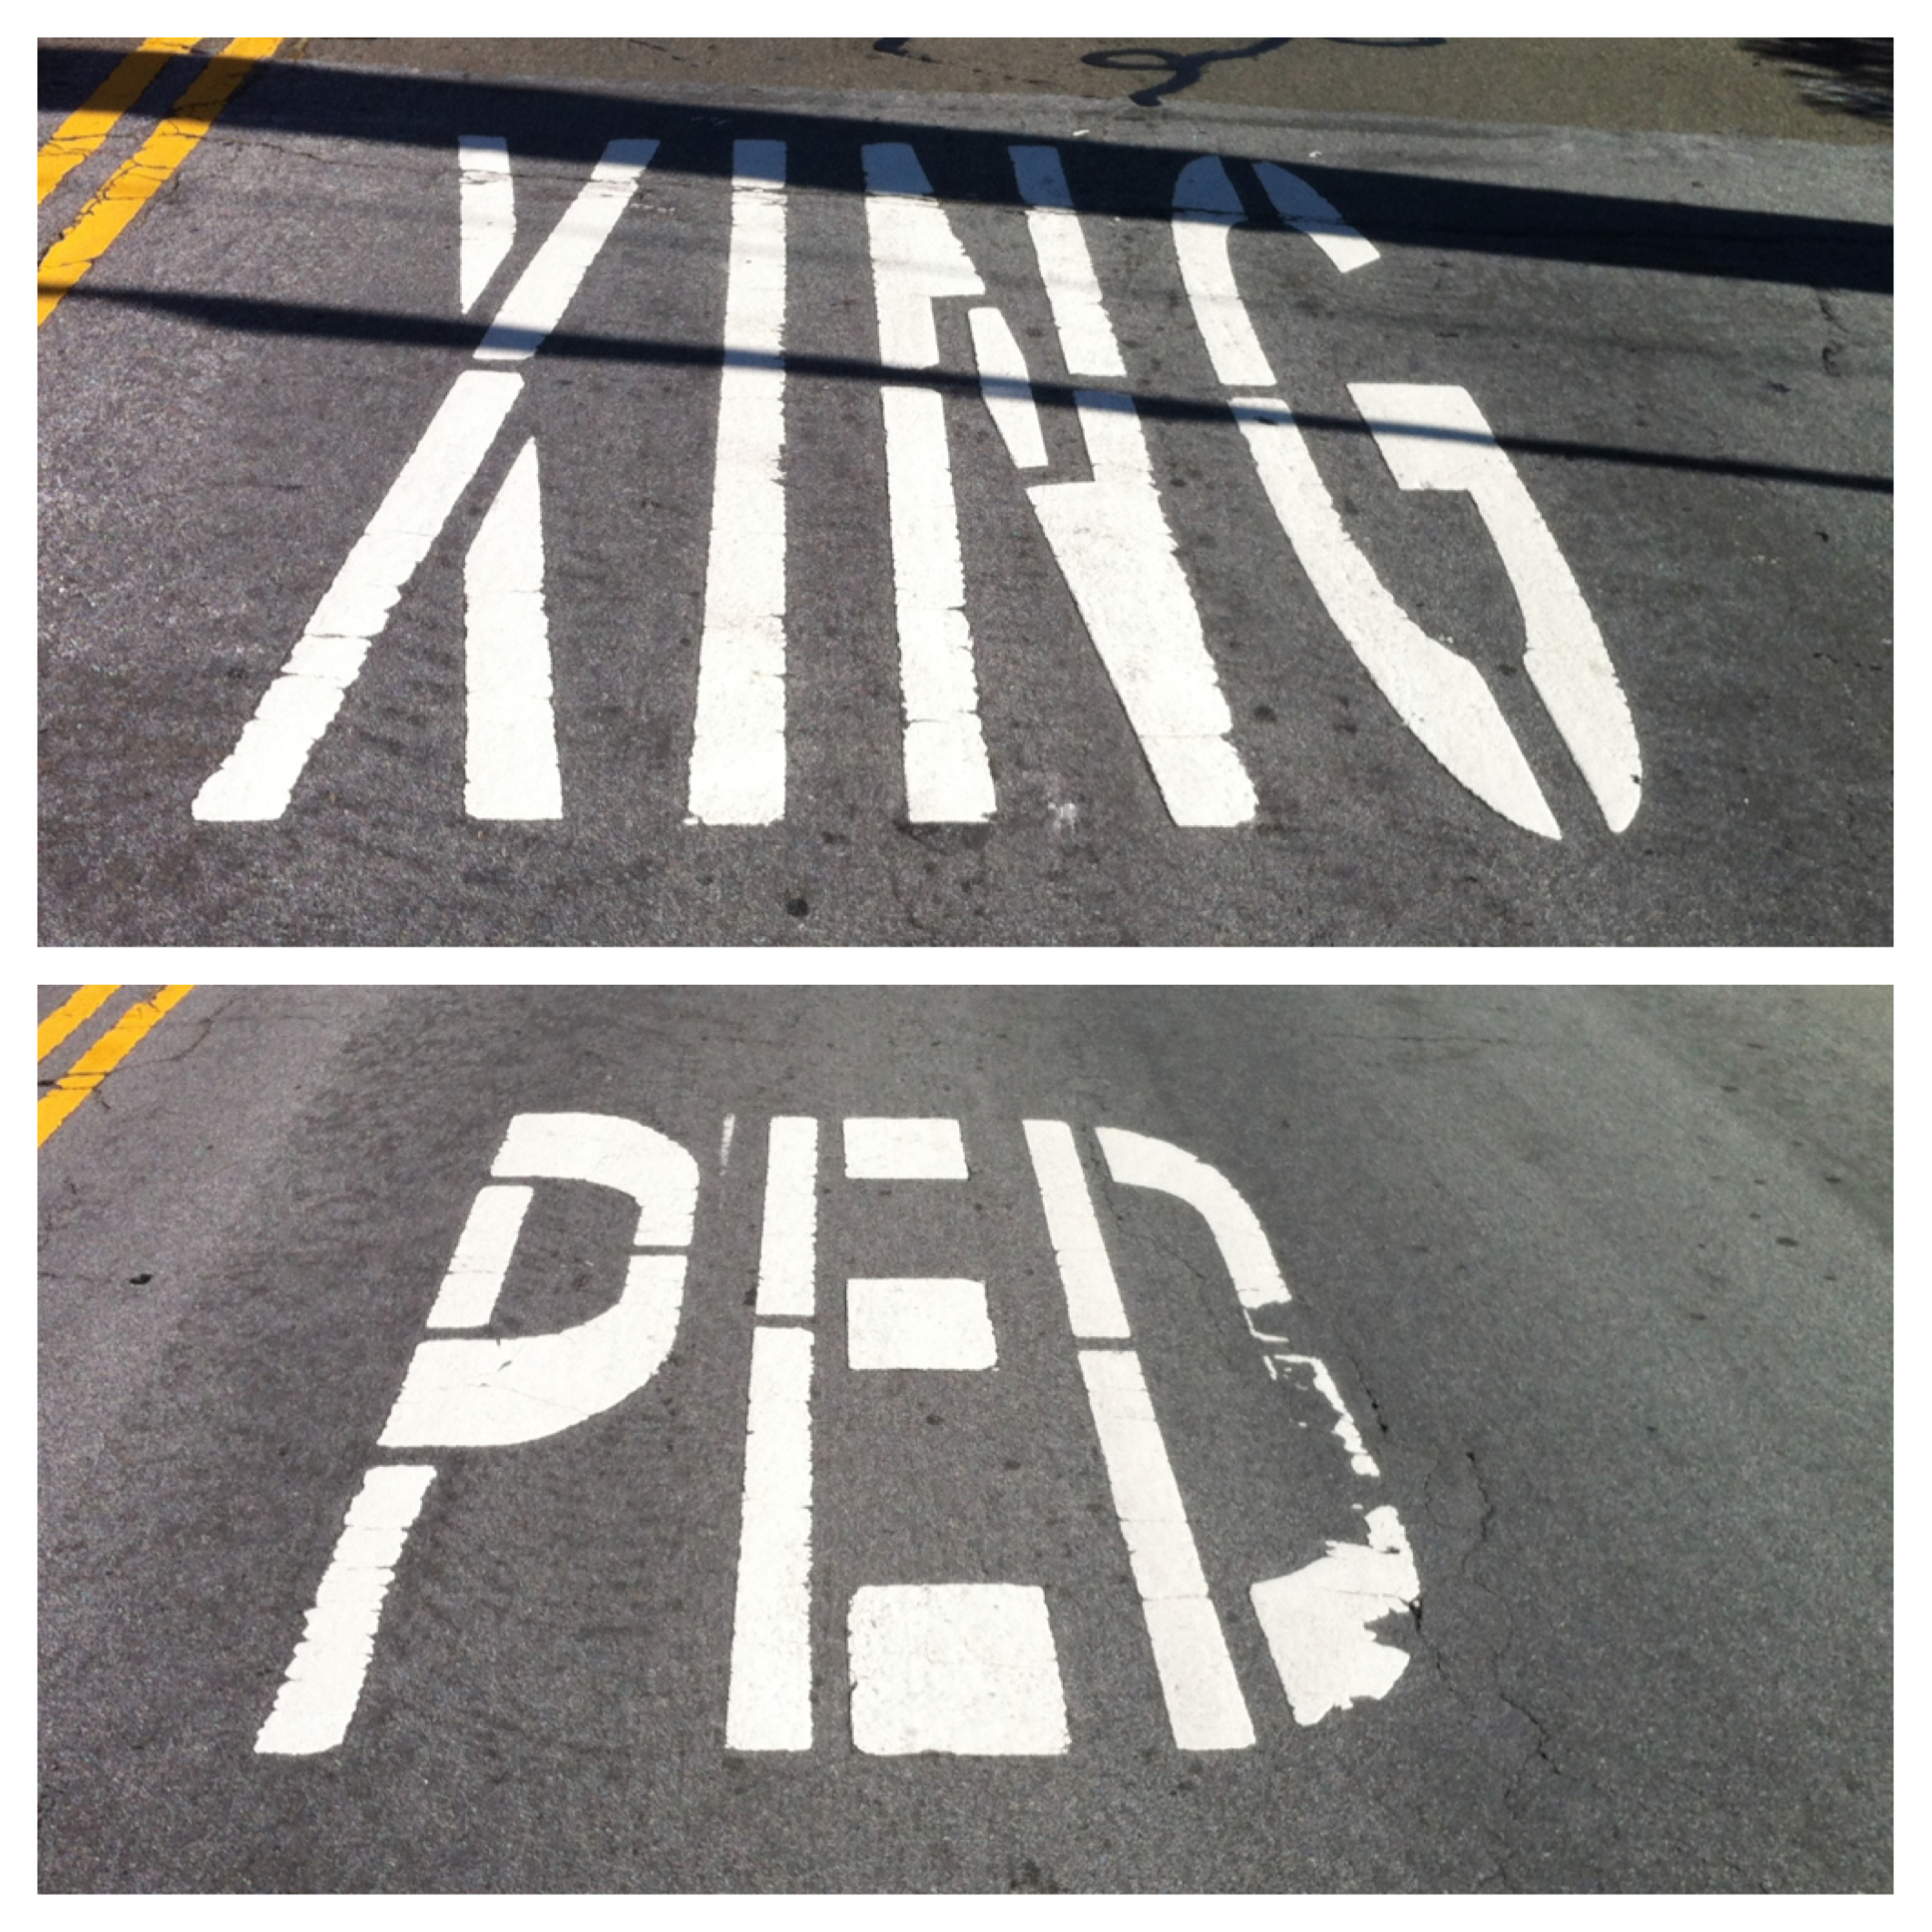 PED XING - Hotel California Blog